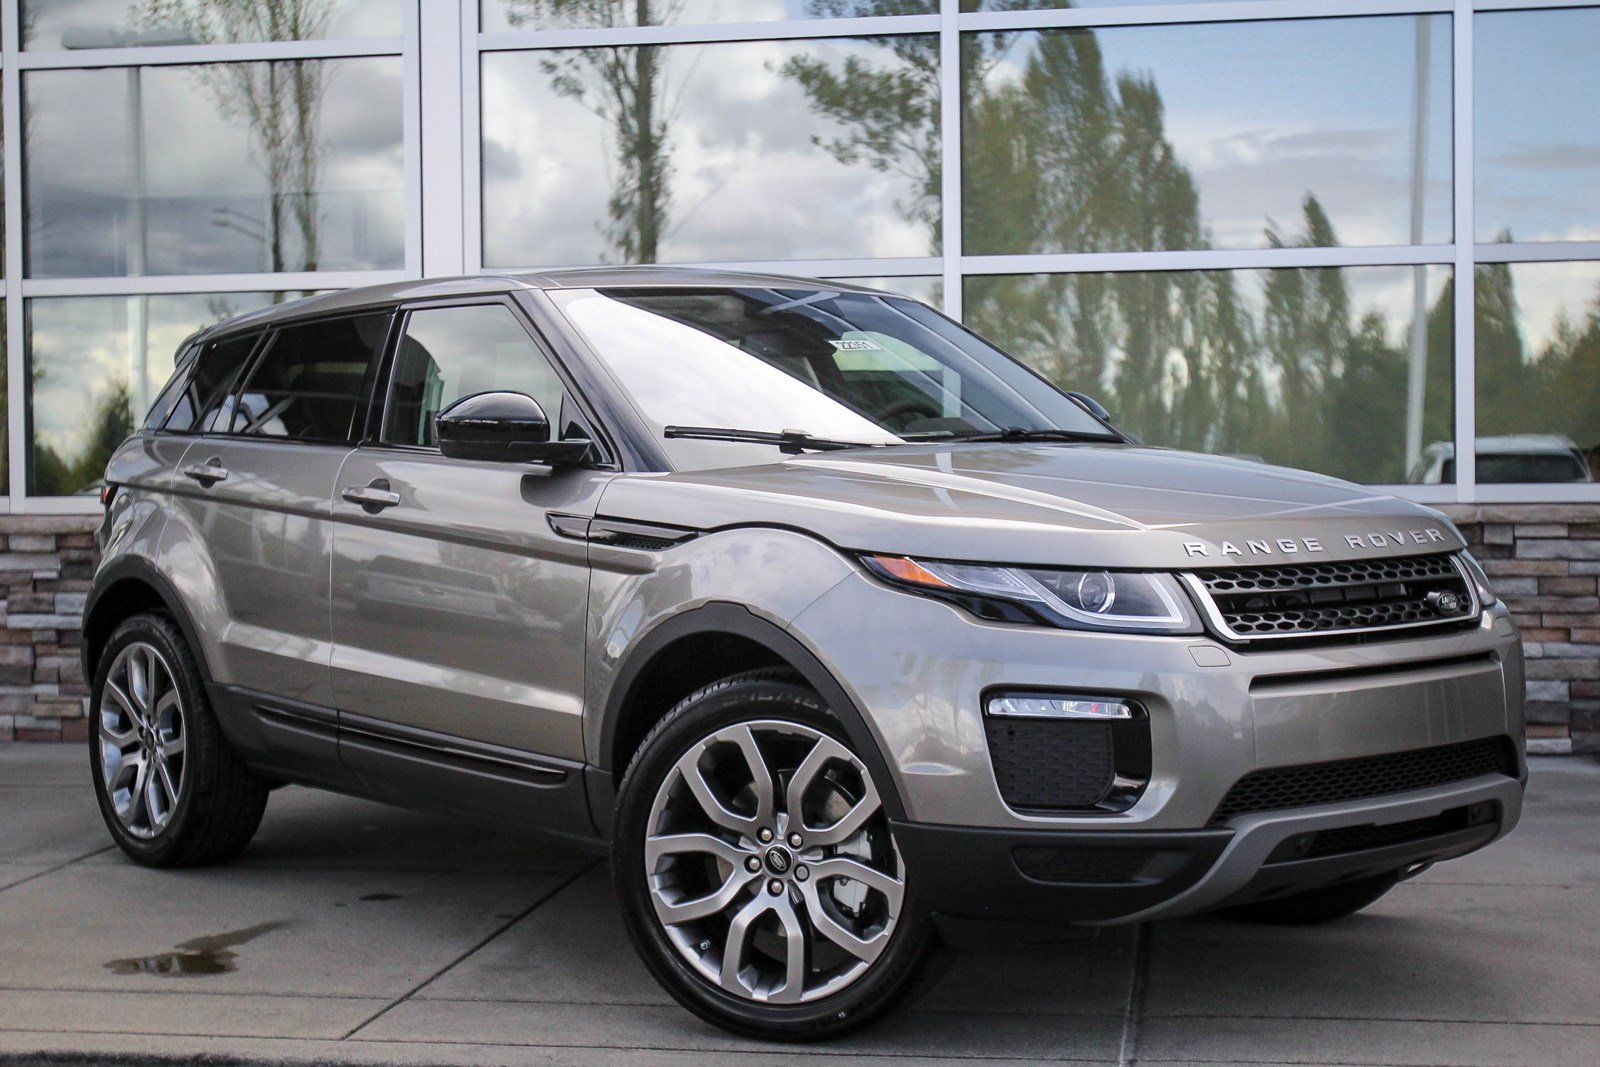 Land Rover Bellevue >> 104 New Cars Suvs In Stock Redmond Land Rover Range Rover Land